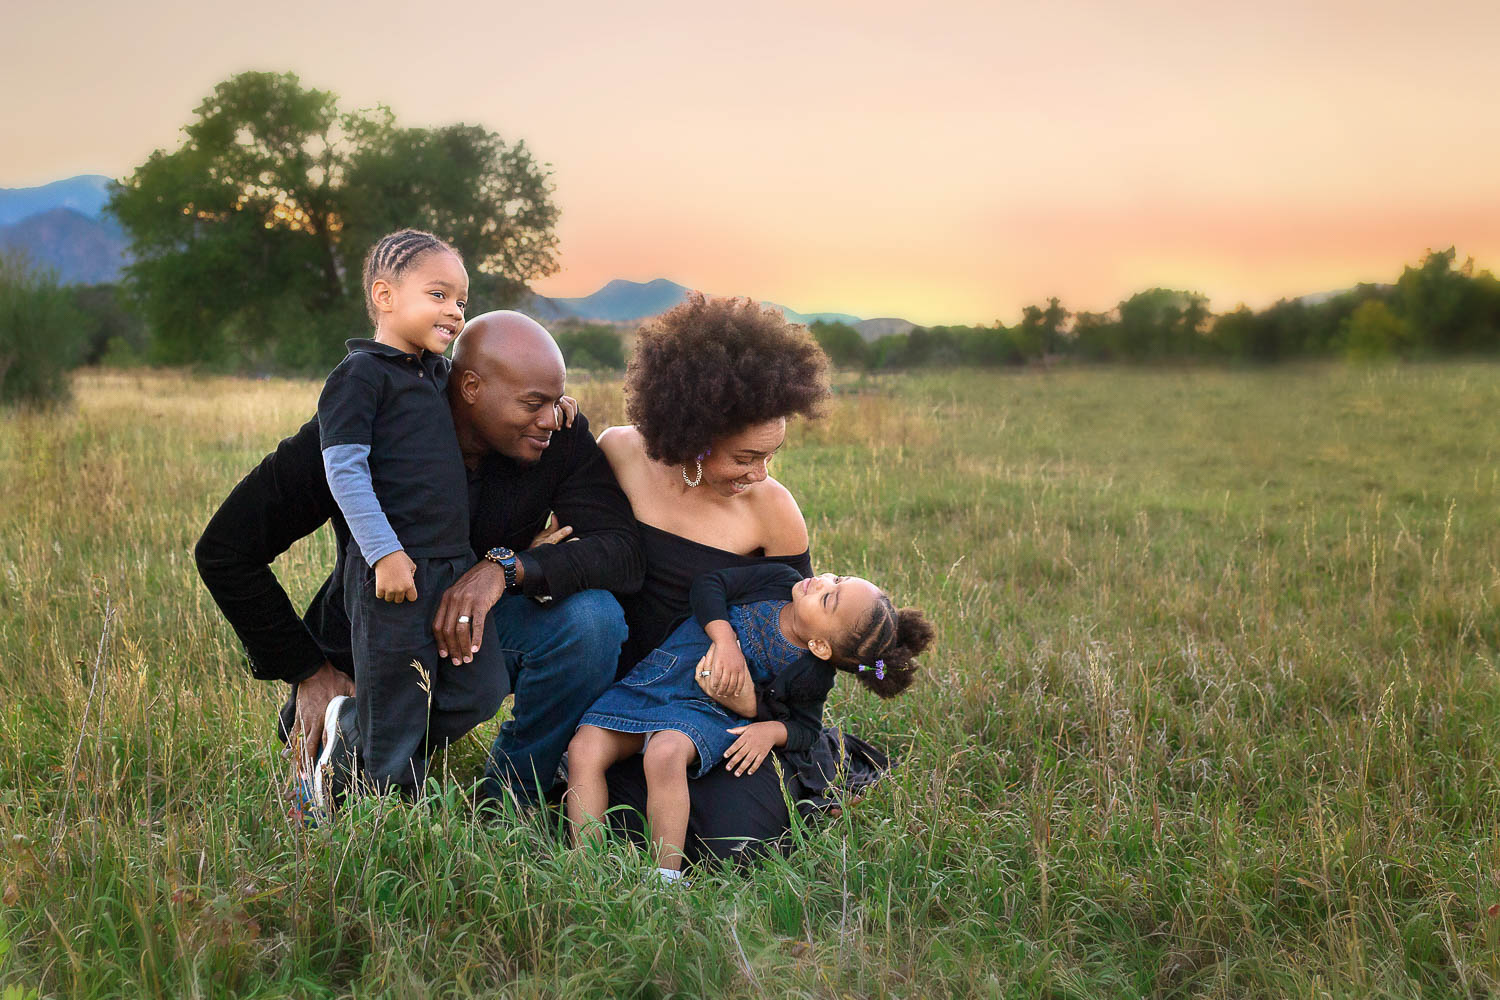 african-american-family-laughing-snuggling-in-colorado-field-alexa-kiel-photography-6.jpg